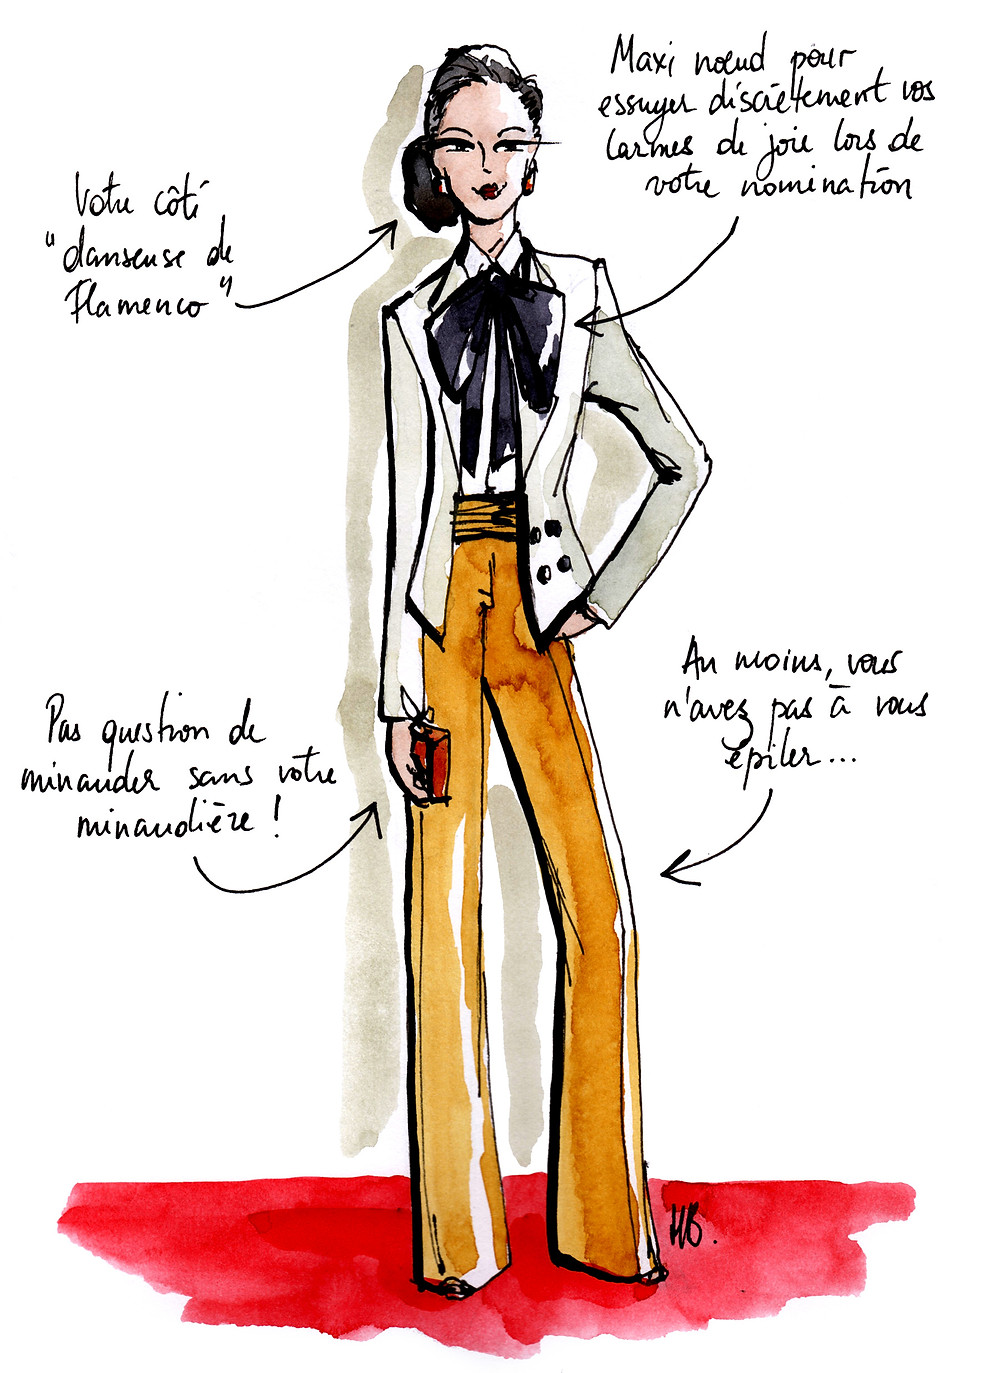 Tenue Festival de Cannes - La masculine - Dessin/Illustration Habile Buston